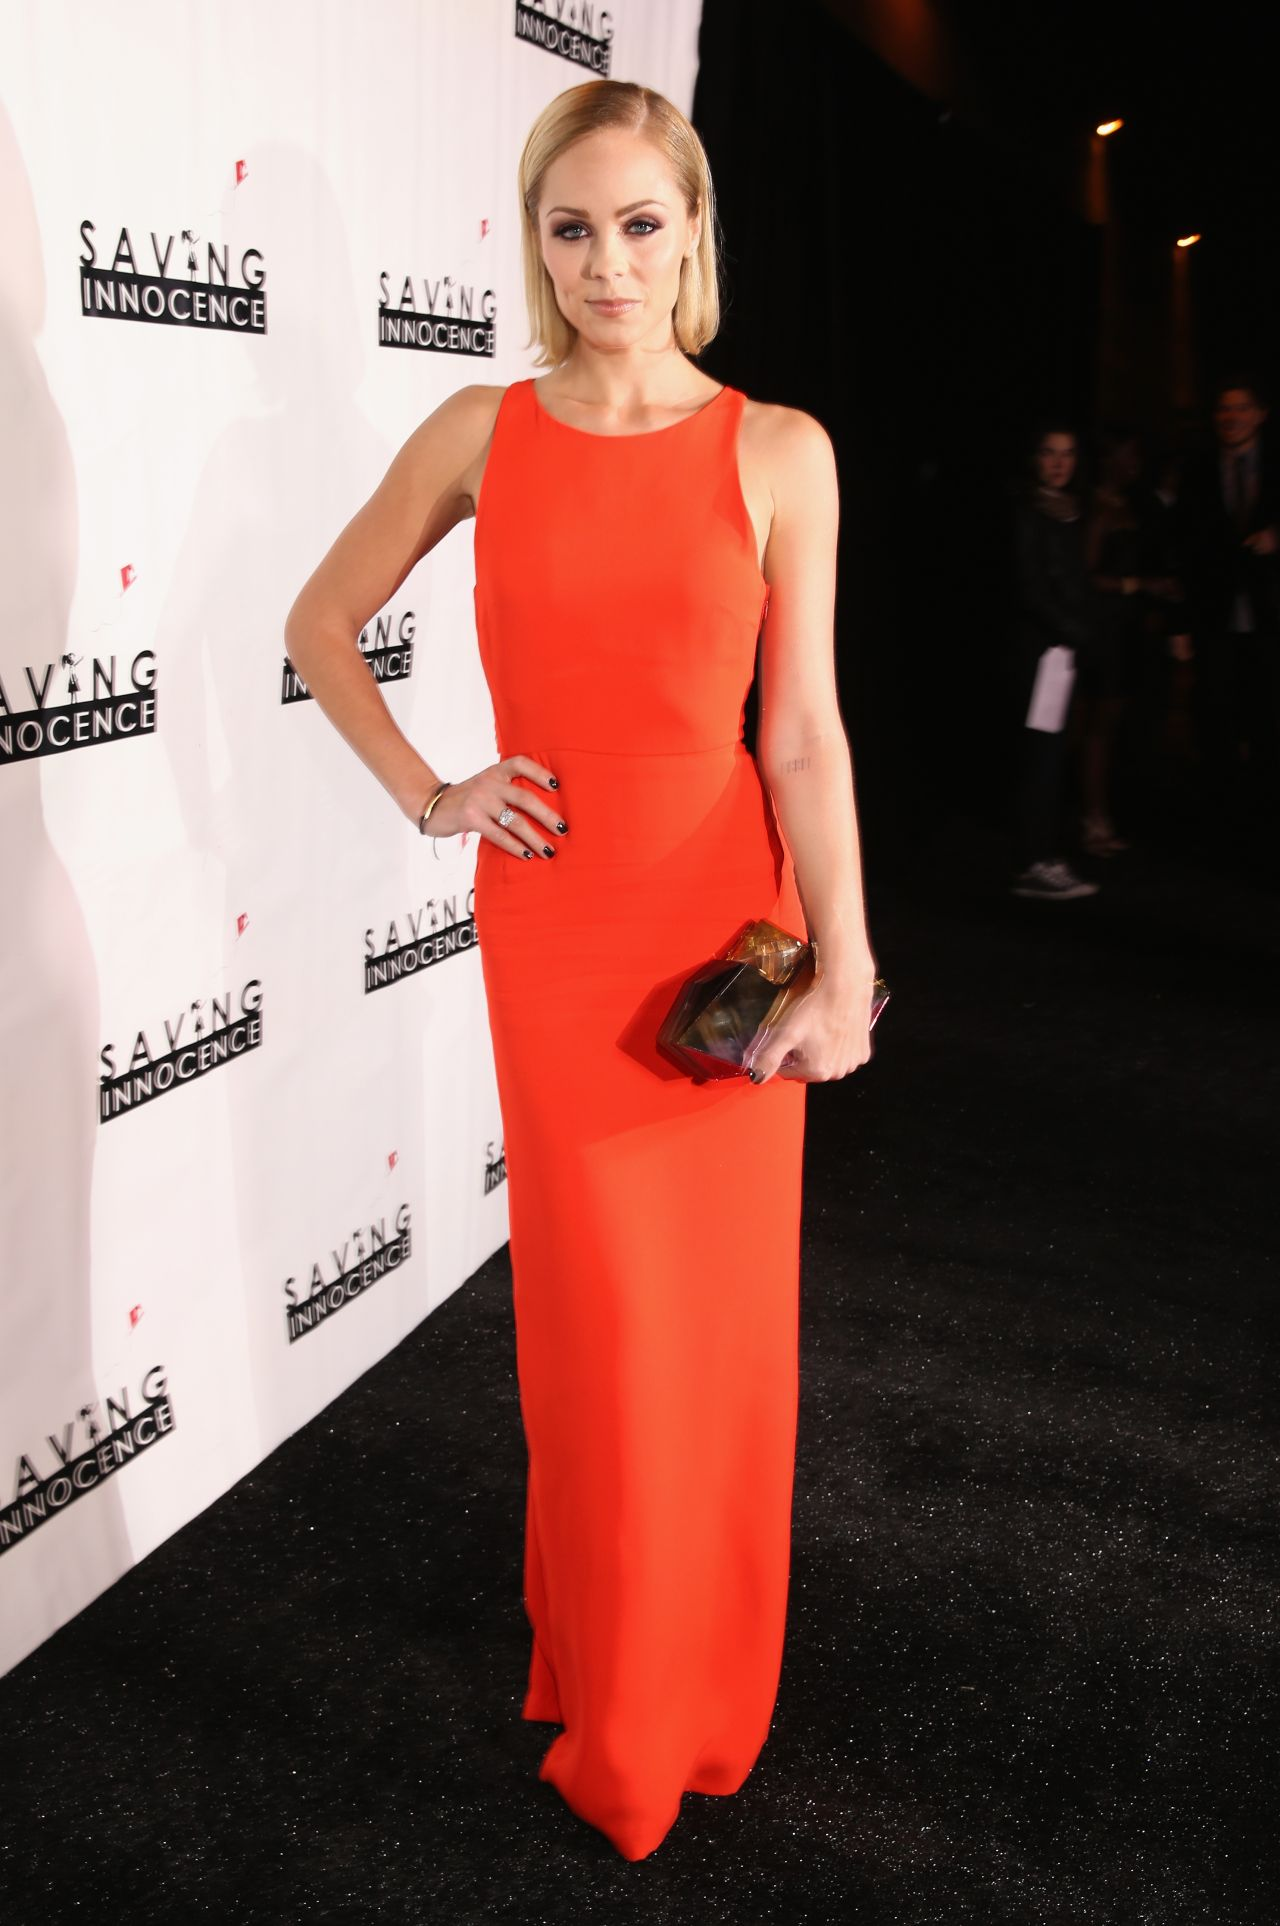 Laura Vandervoort at 2nd Annual Saving Innocence Gala in Los Angeles, December 2013